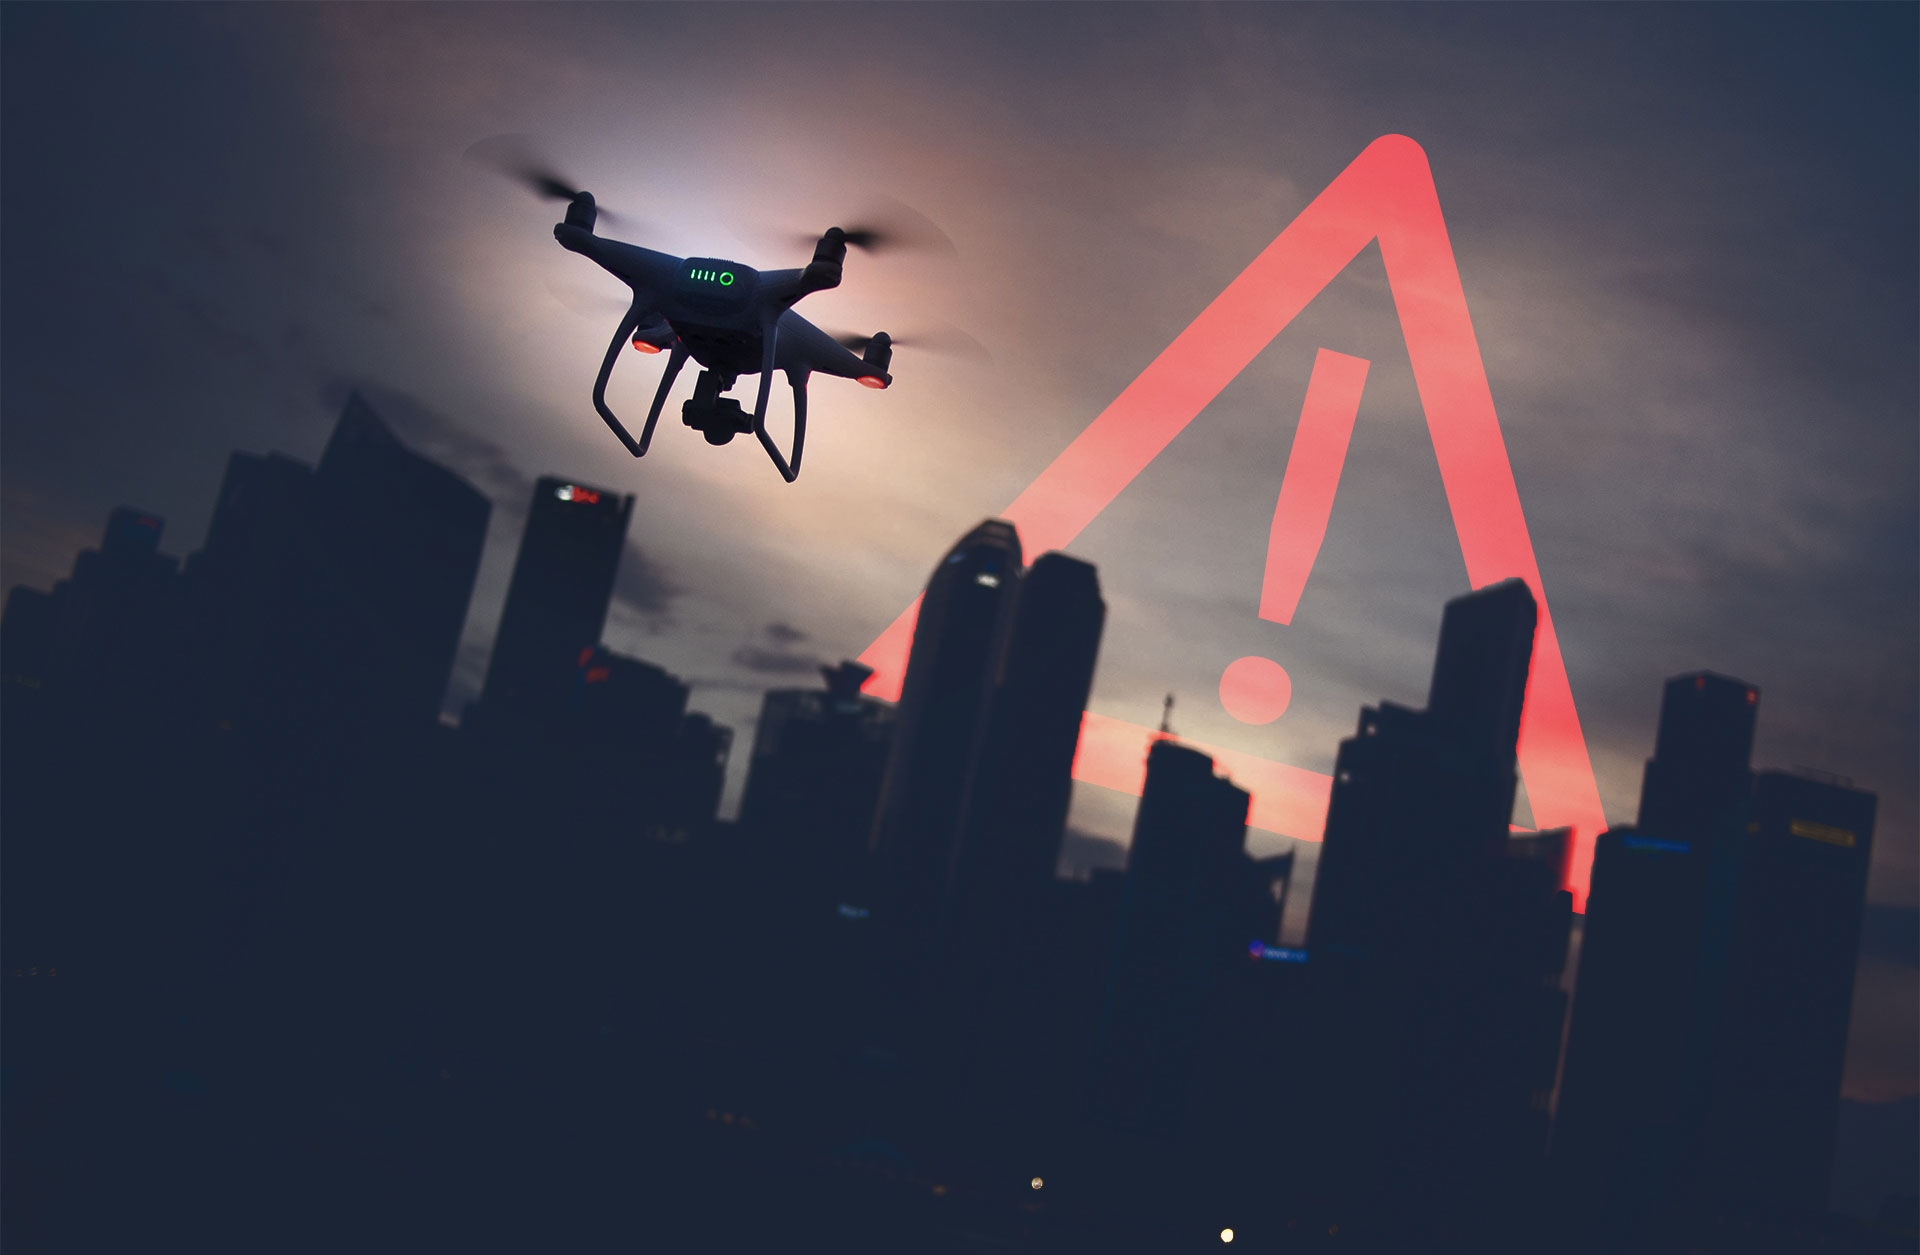 How to Protect Against Drone Threats - WWT